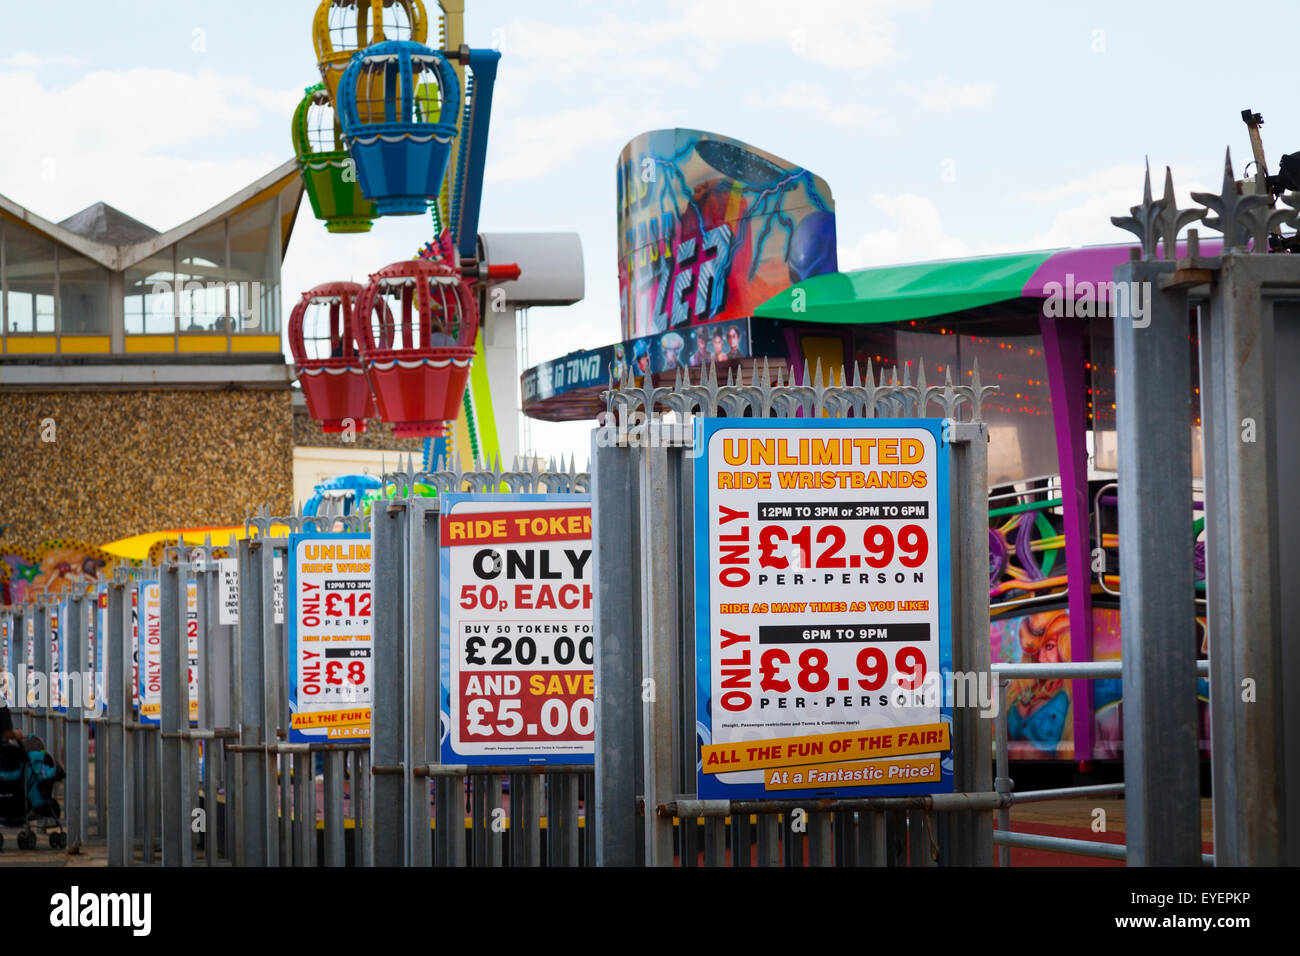 Fairground ride prices for wristbands signs Stock Photo